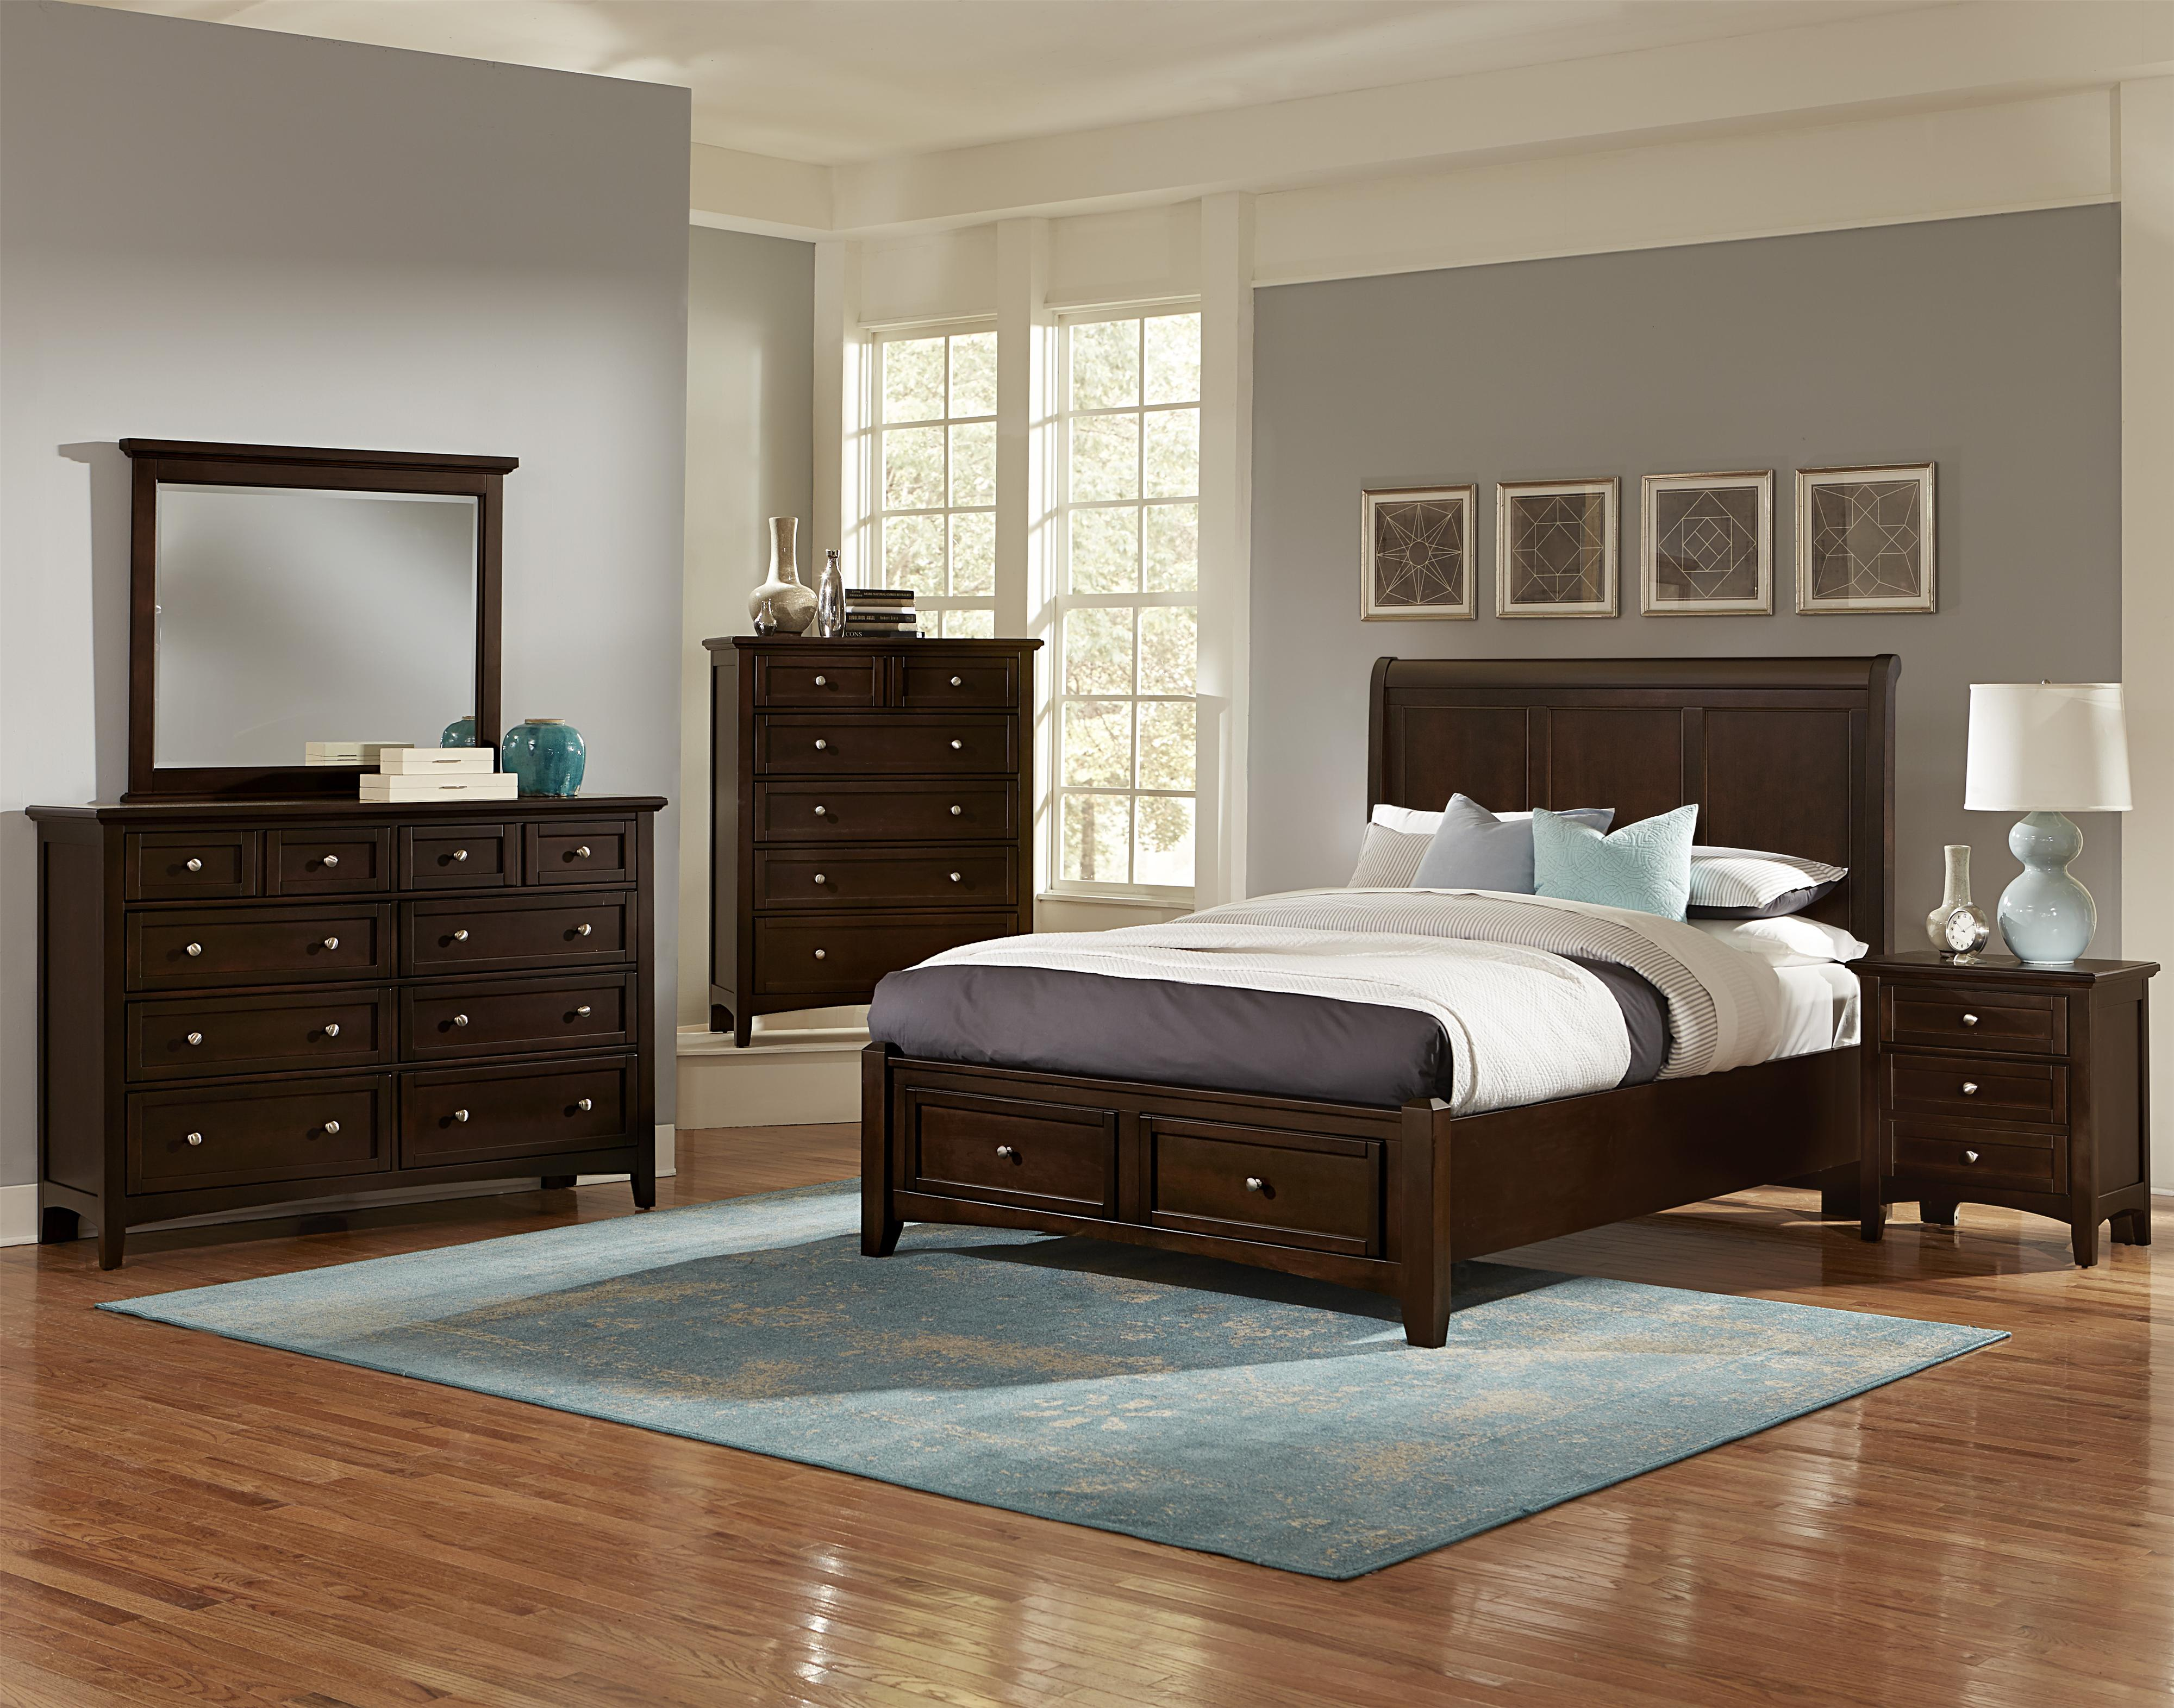 Bonanza King Bedroom Group by Vaughan Bassett at Northeast Factory Direct